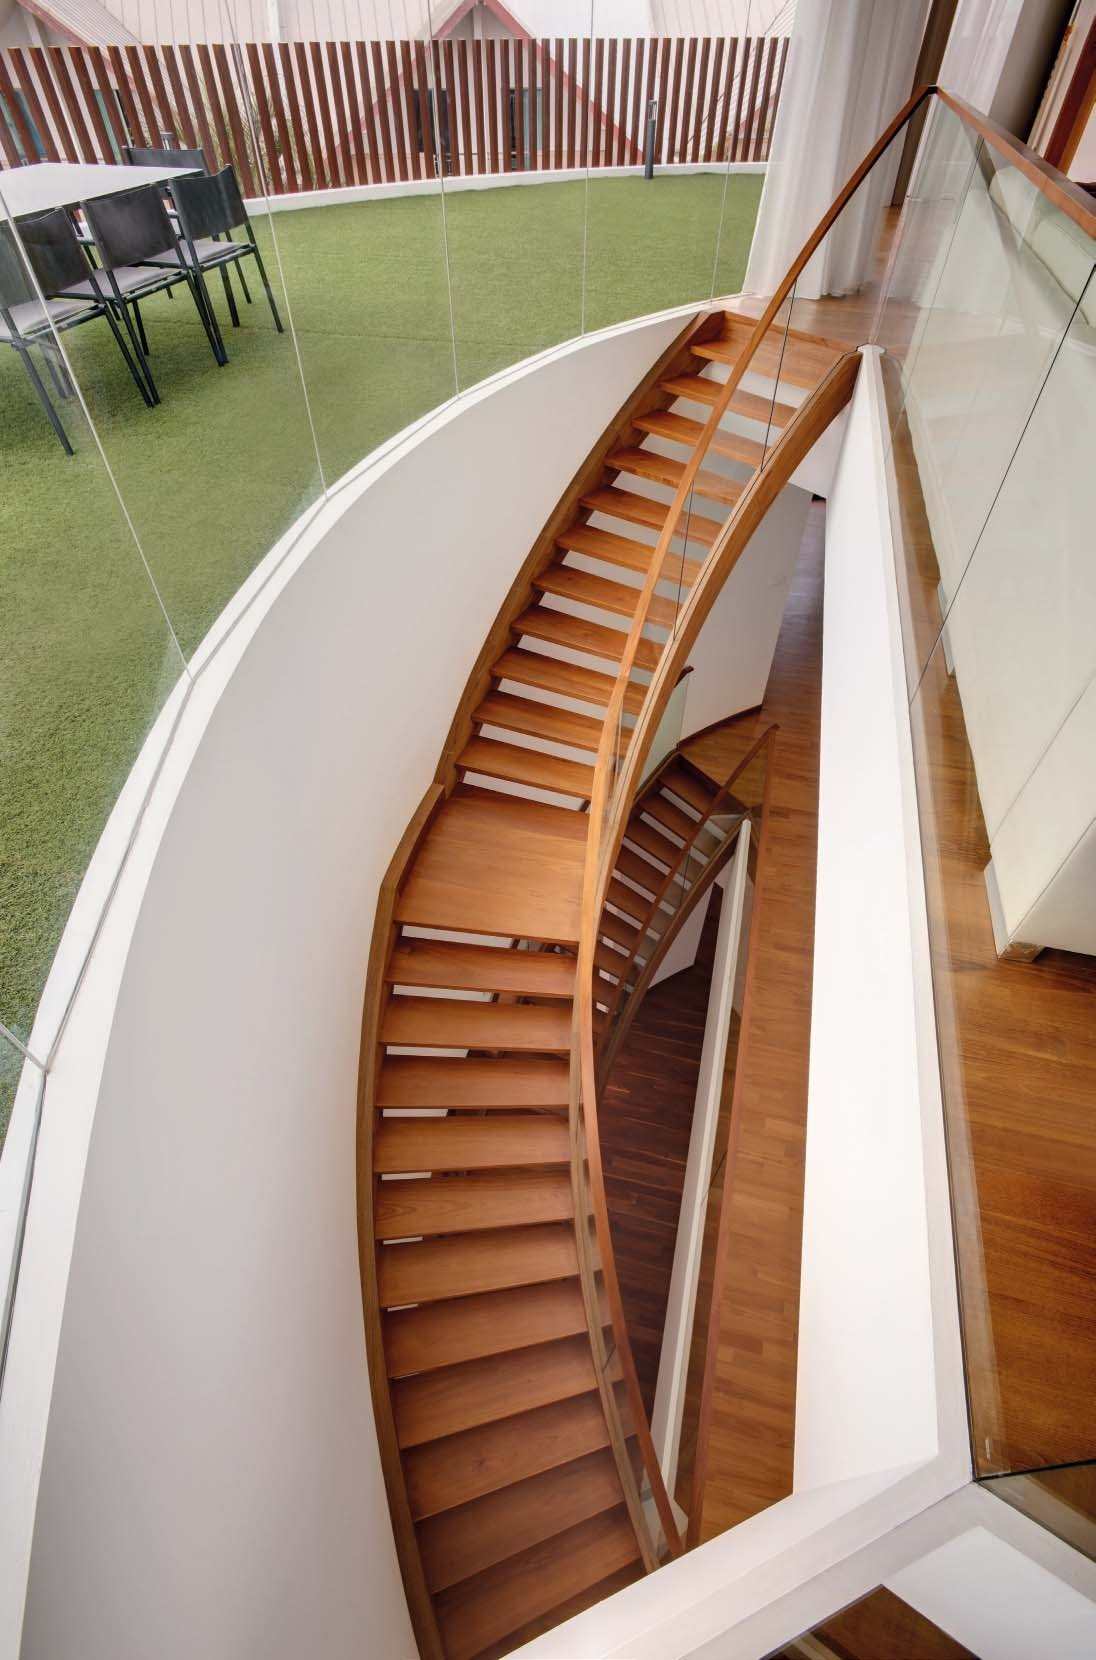 The elegance,